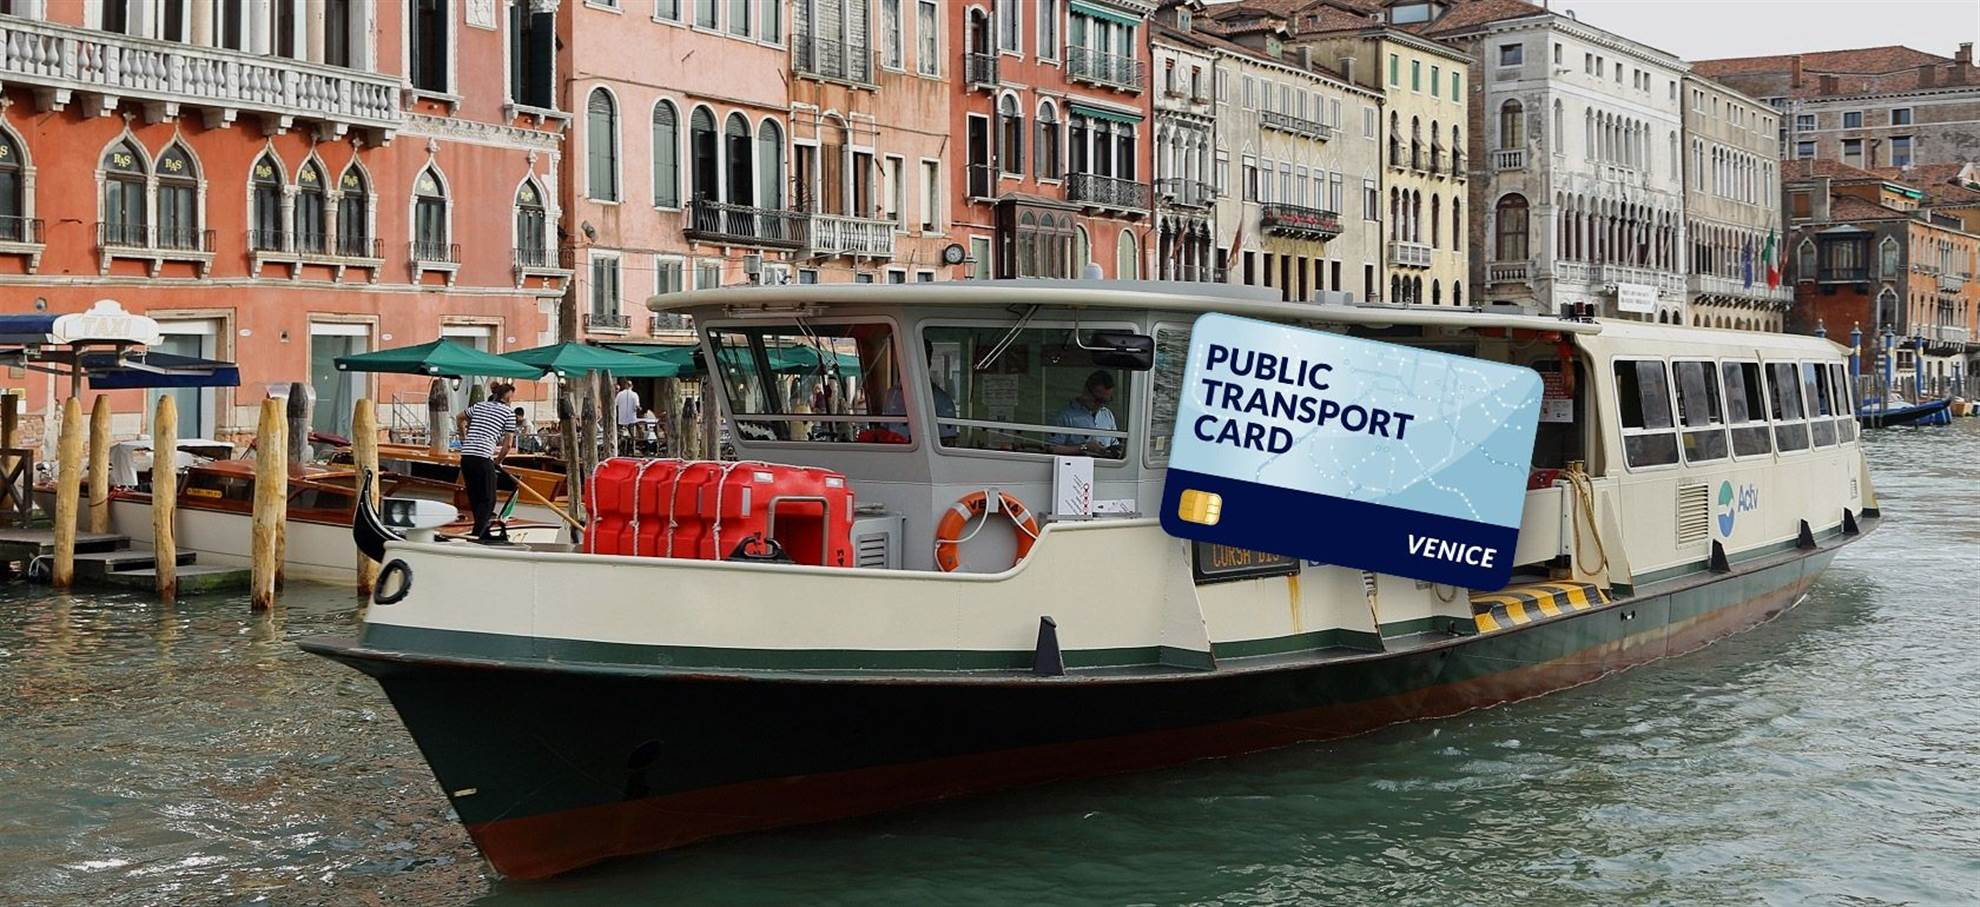 Venecia Travel Card